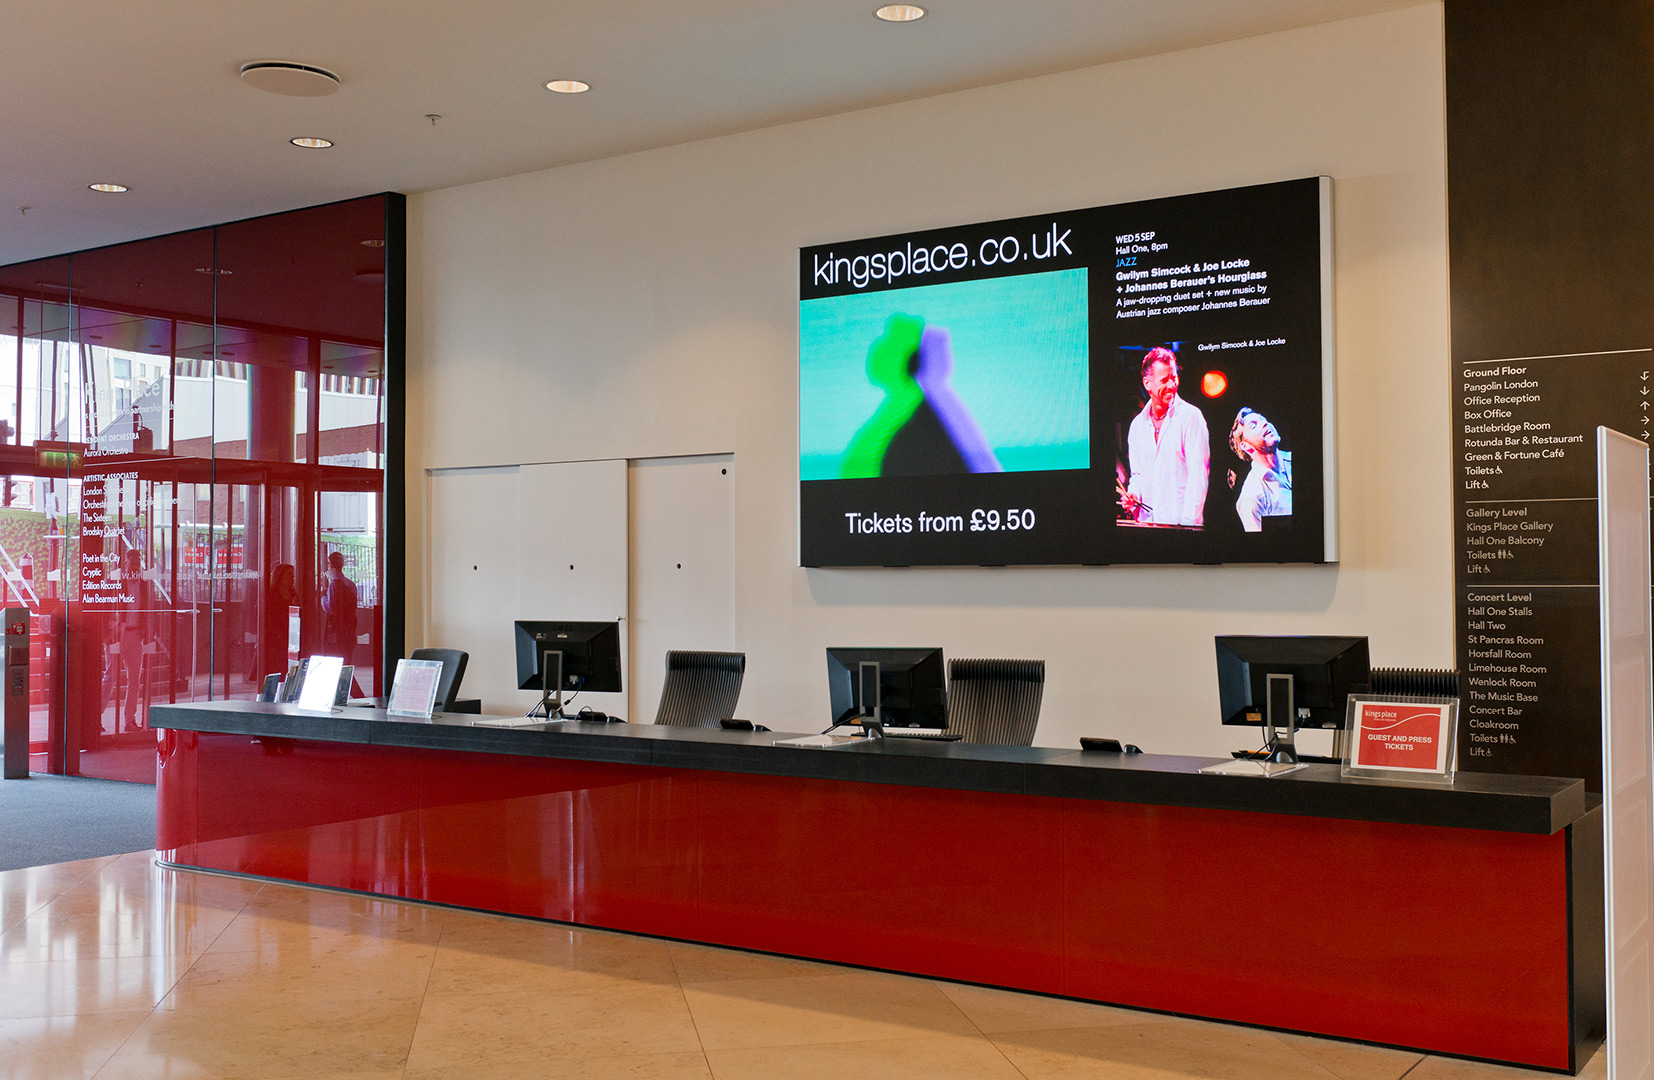 eclipse-digital-media-digital-signage-av-solutions-apetito-customer-visitor-centre-case-study-customer-waiting-area-1aeclipse digital media - digital signage and av solutions - apetito customer visitor centre - waiting area